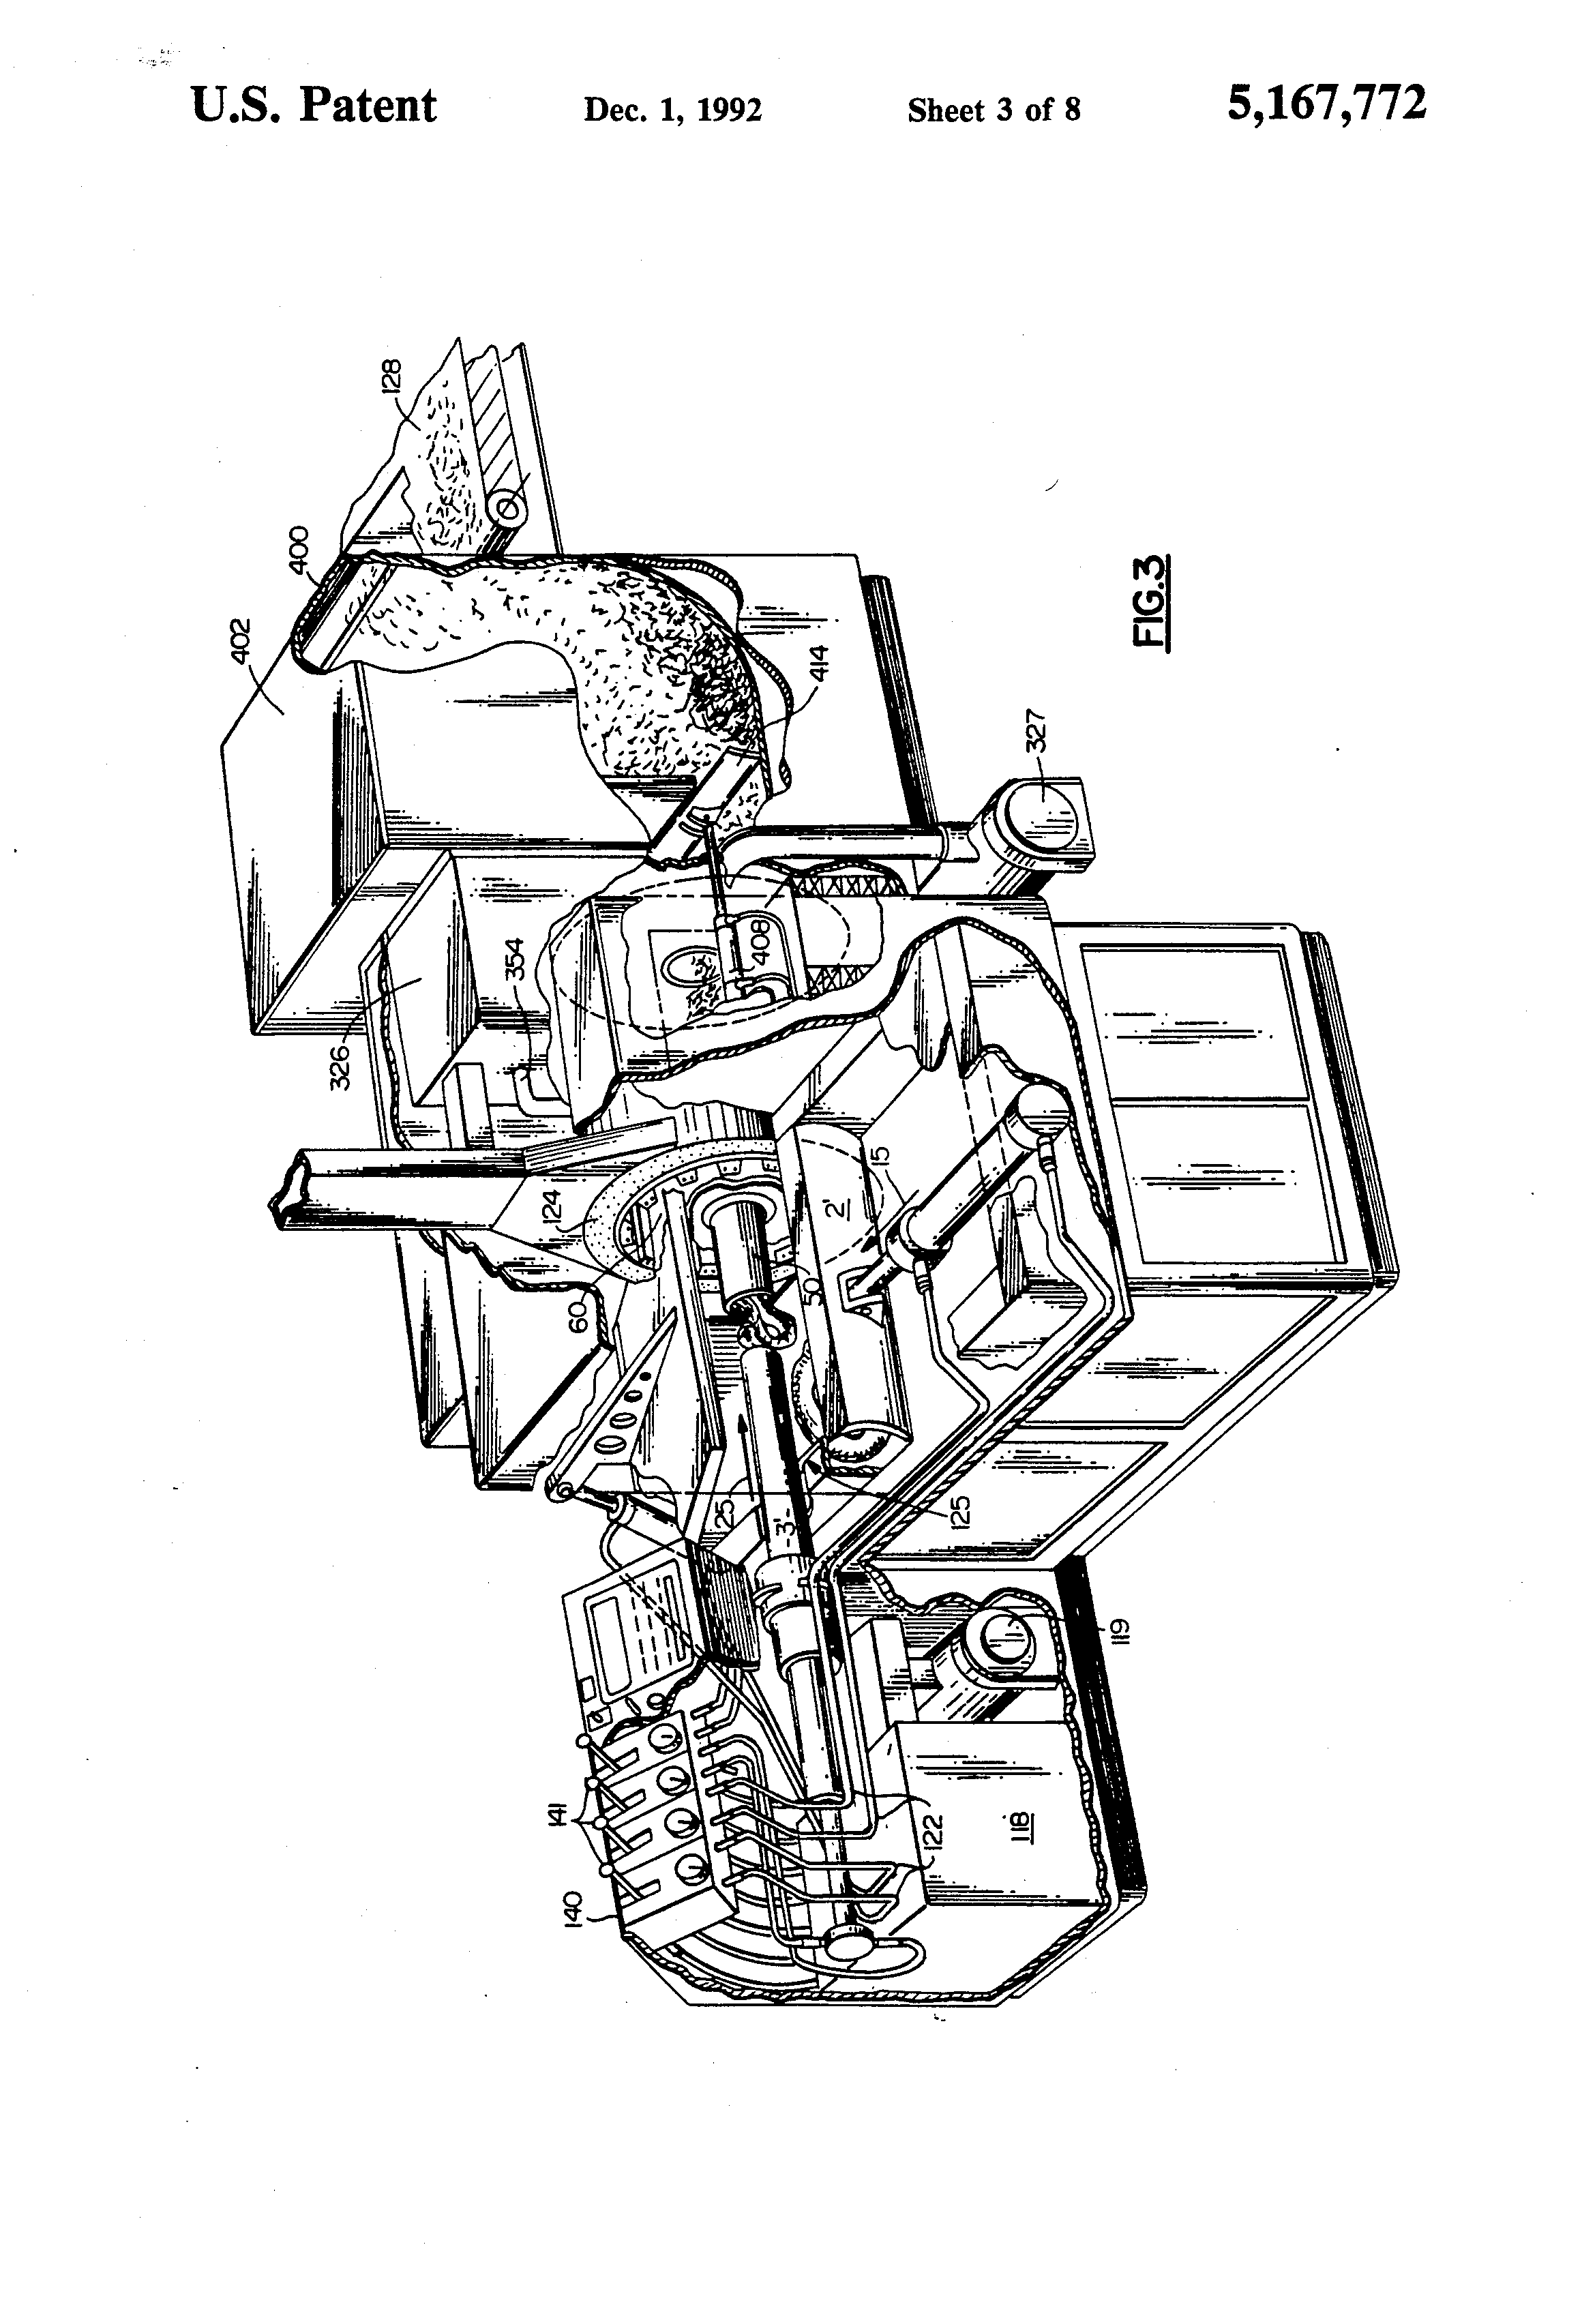 1996 Nissan 240sx Wiring Diagram Manual Of 240 Fan Page 4 And Schematics Rh Rivcas Org Fuse Box